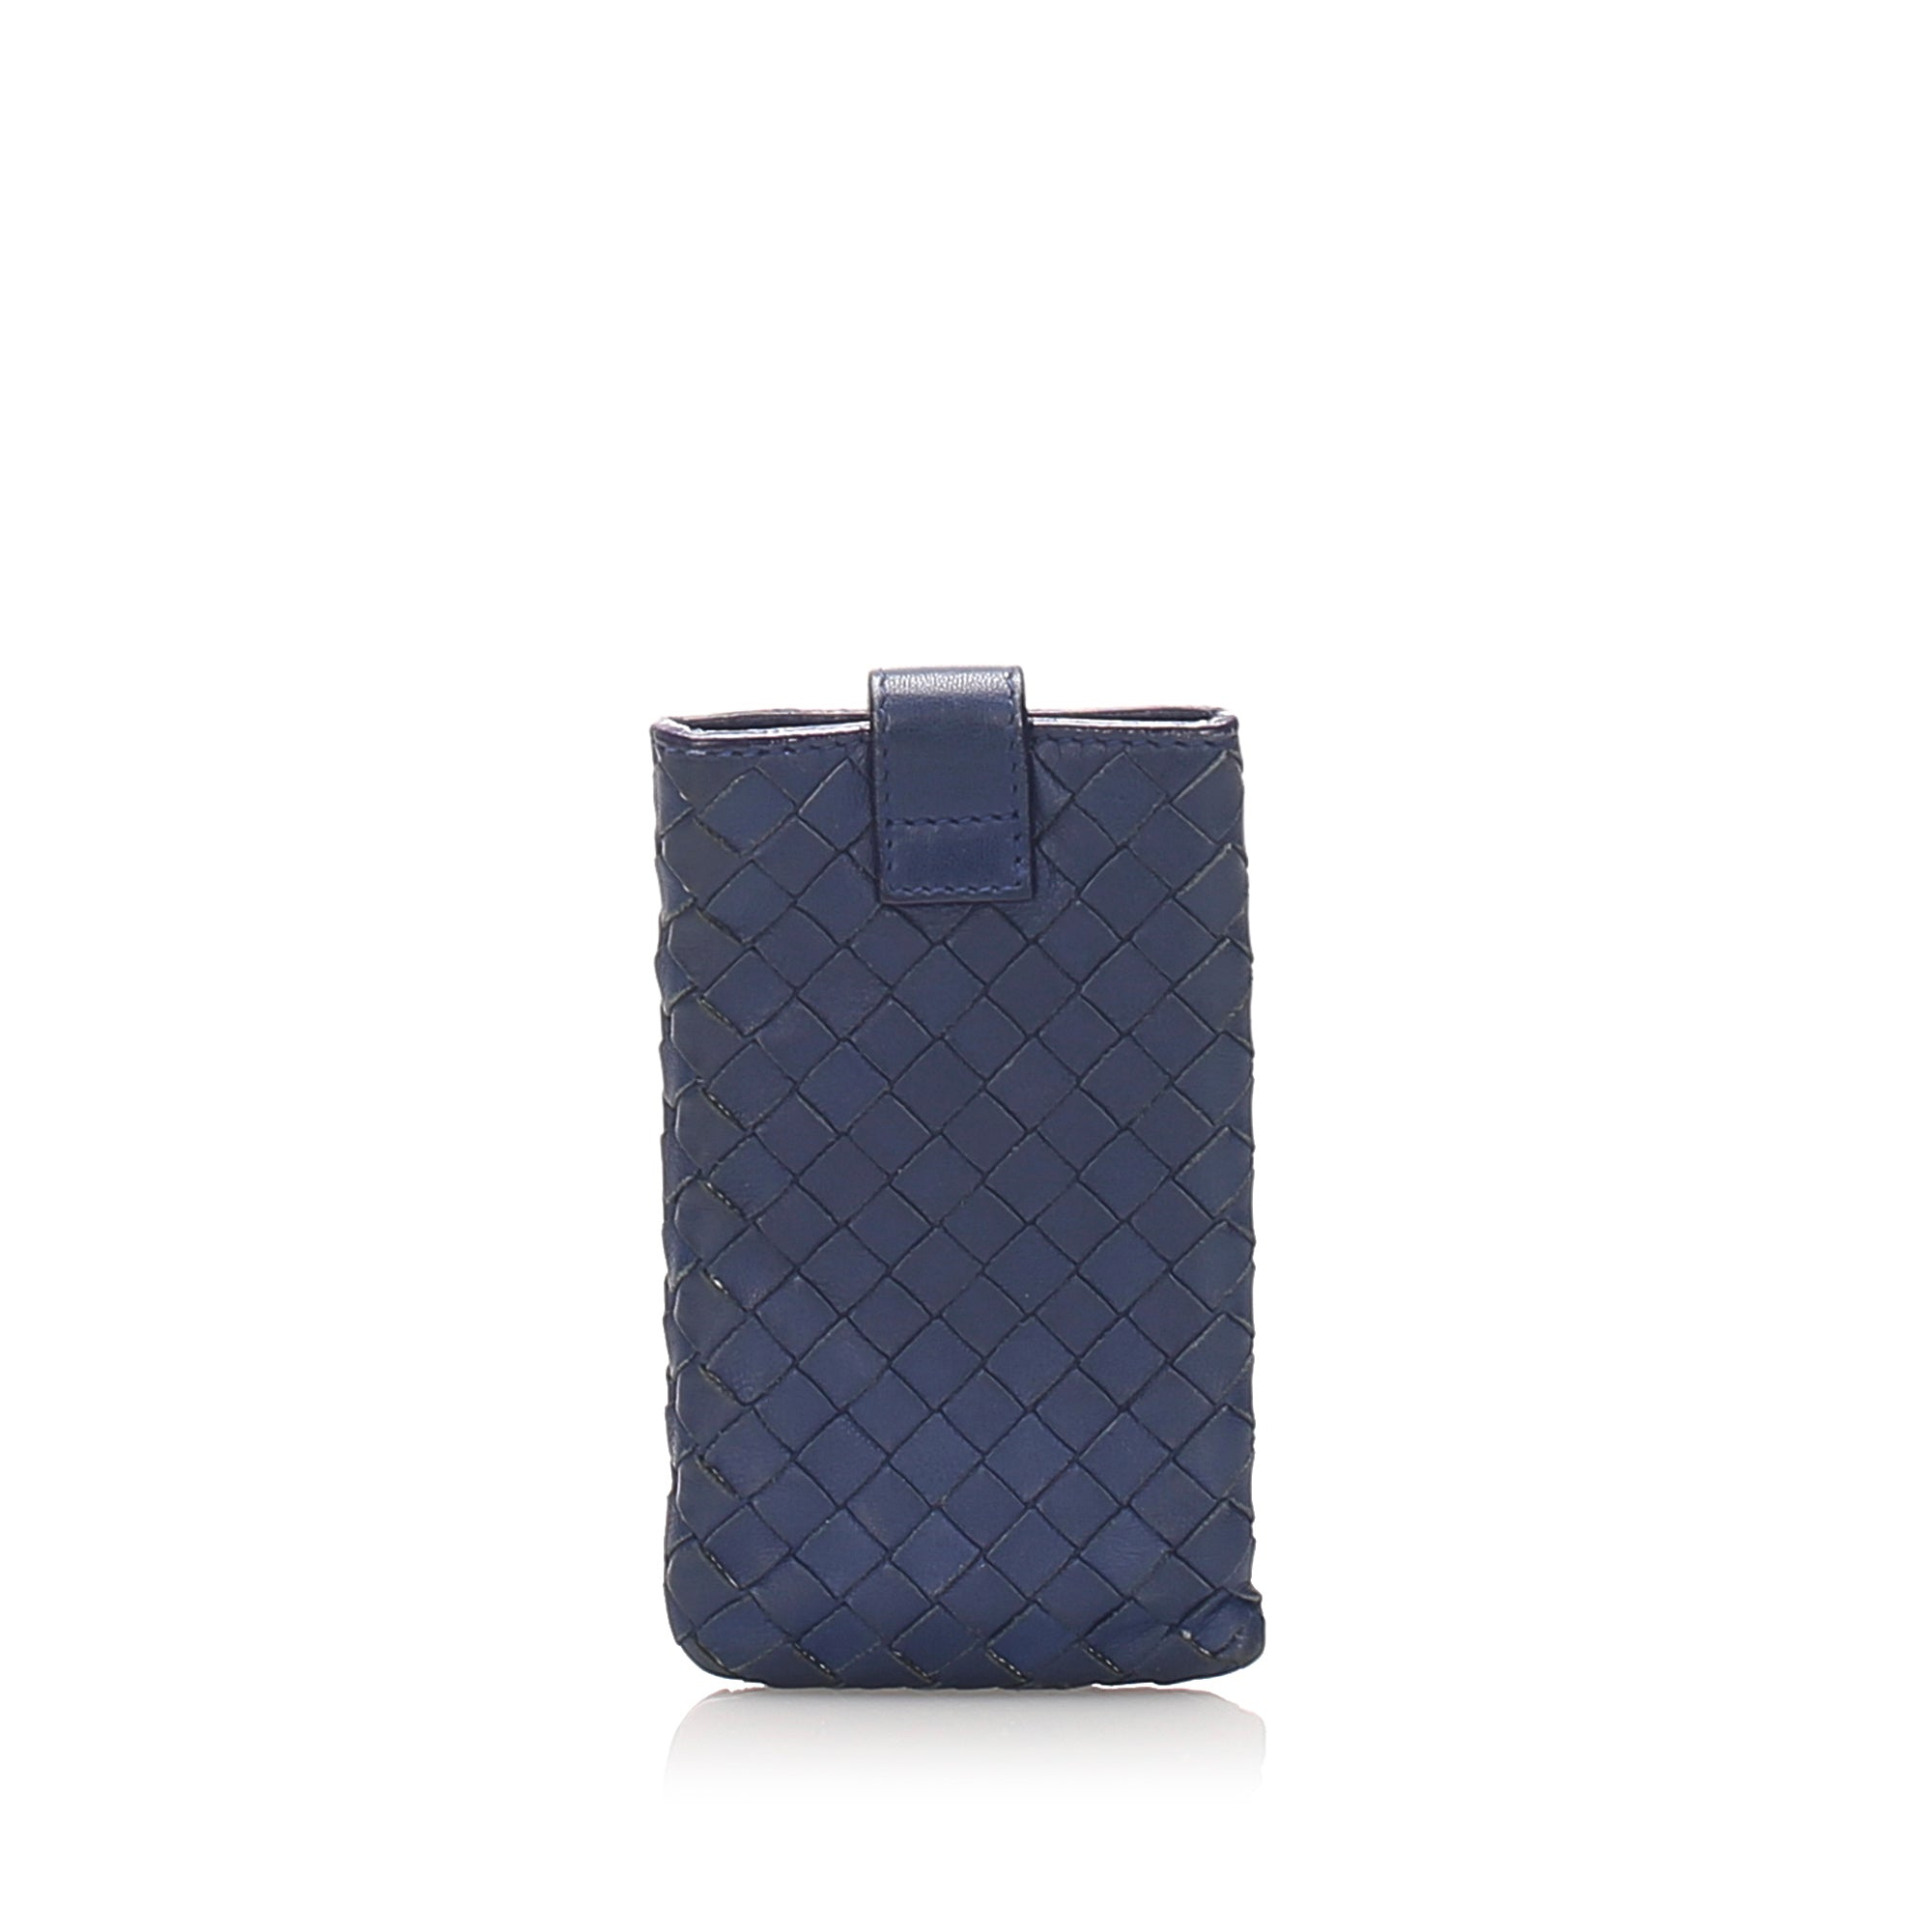 Bottega Veneta Blue Intrecciato Phone Case